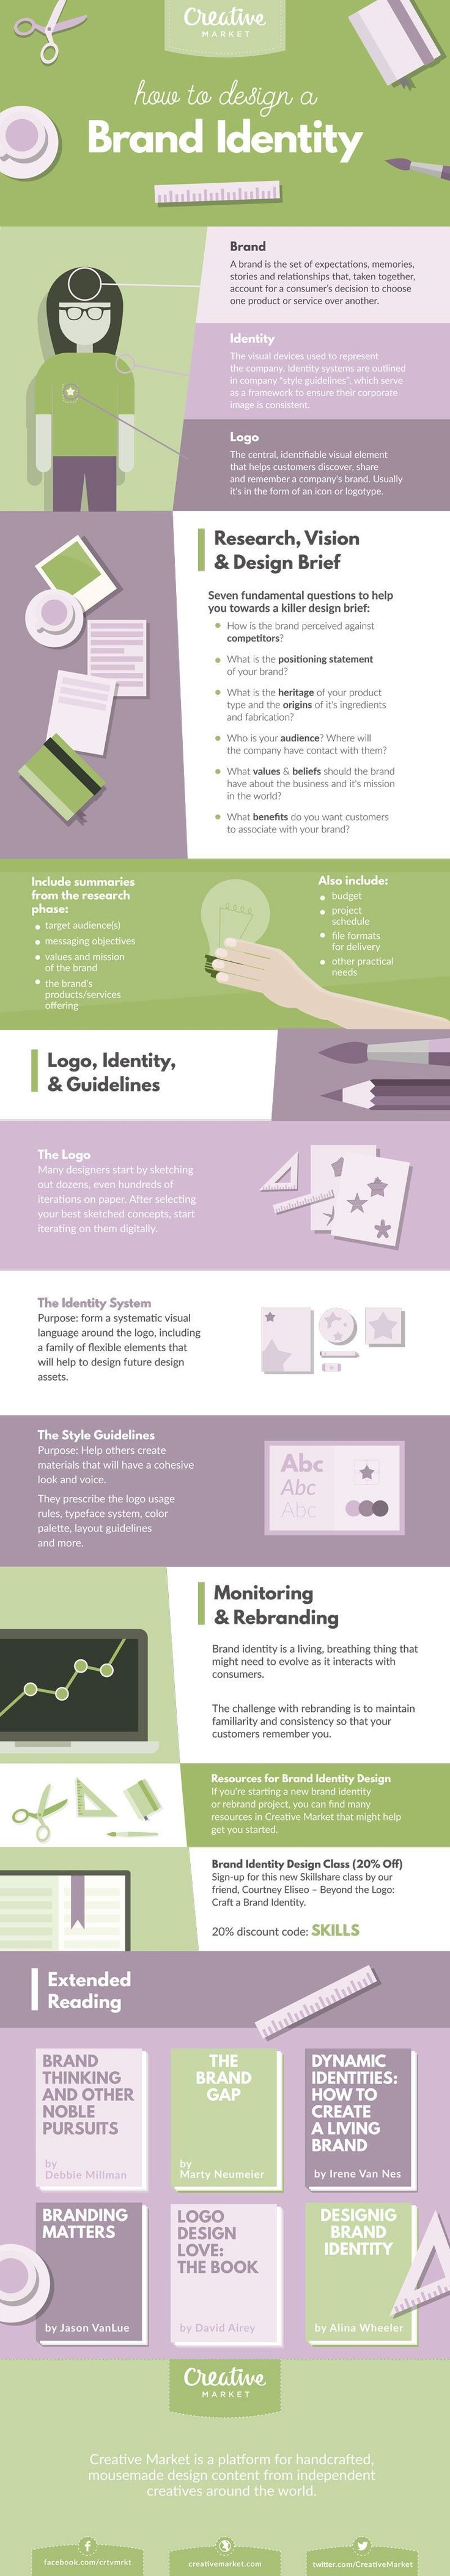 29 best graphic design inspiration images on pinterest graph 29 best graphic design inspiration images on pinterest graph design chart design and charts fandeluxe Image collections